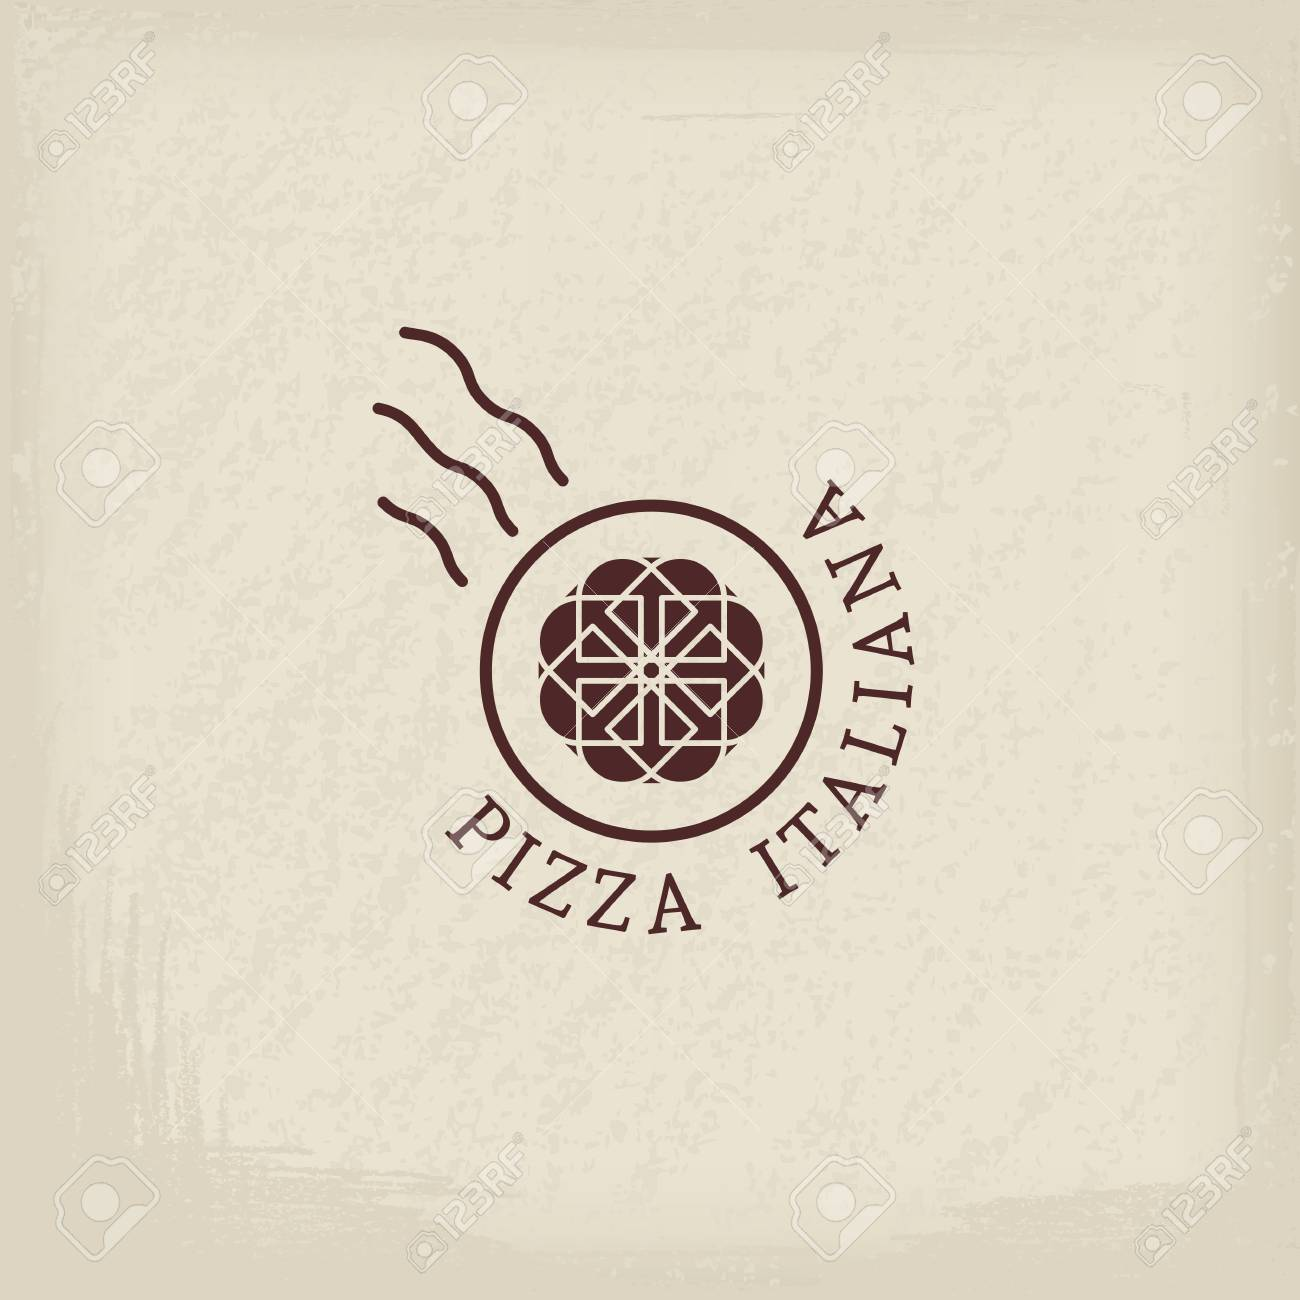 Pizzeria Logo Template With Text Italian Pizza In Italian Emblems For Restaurants Cafe